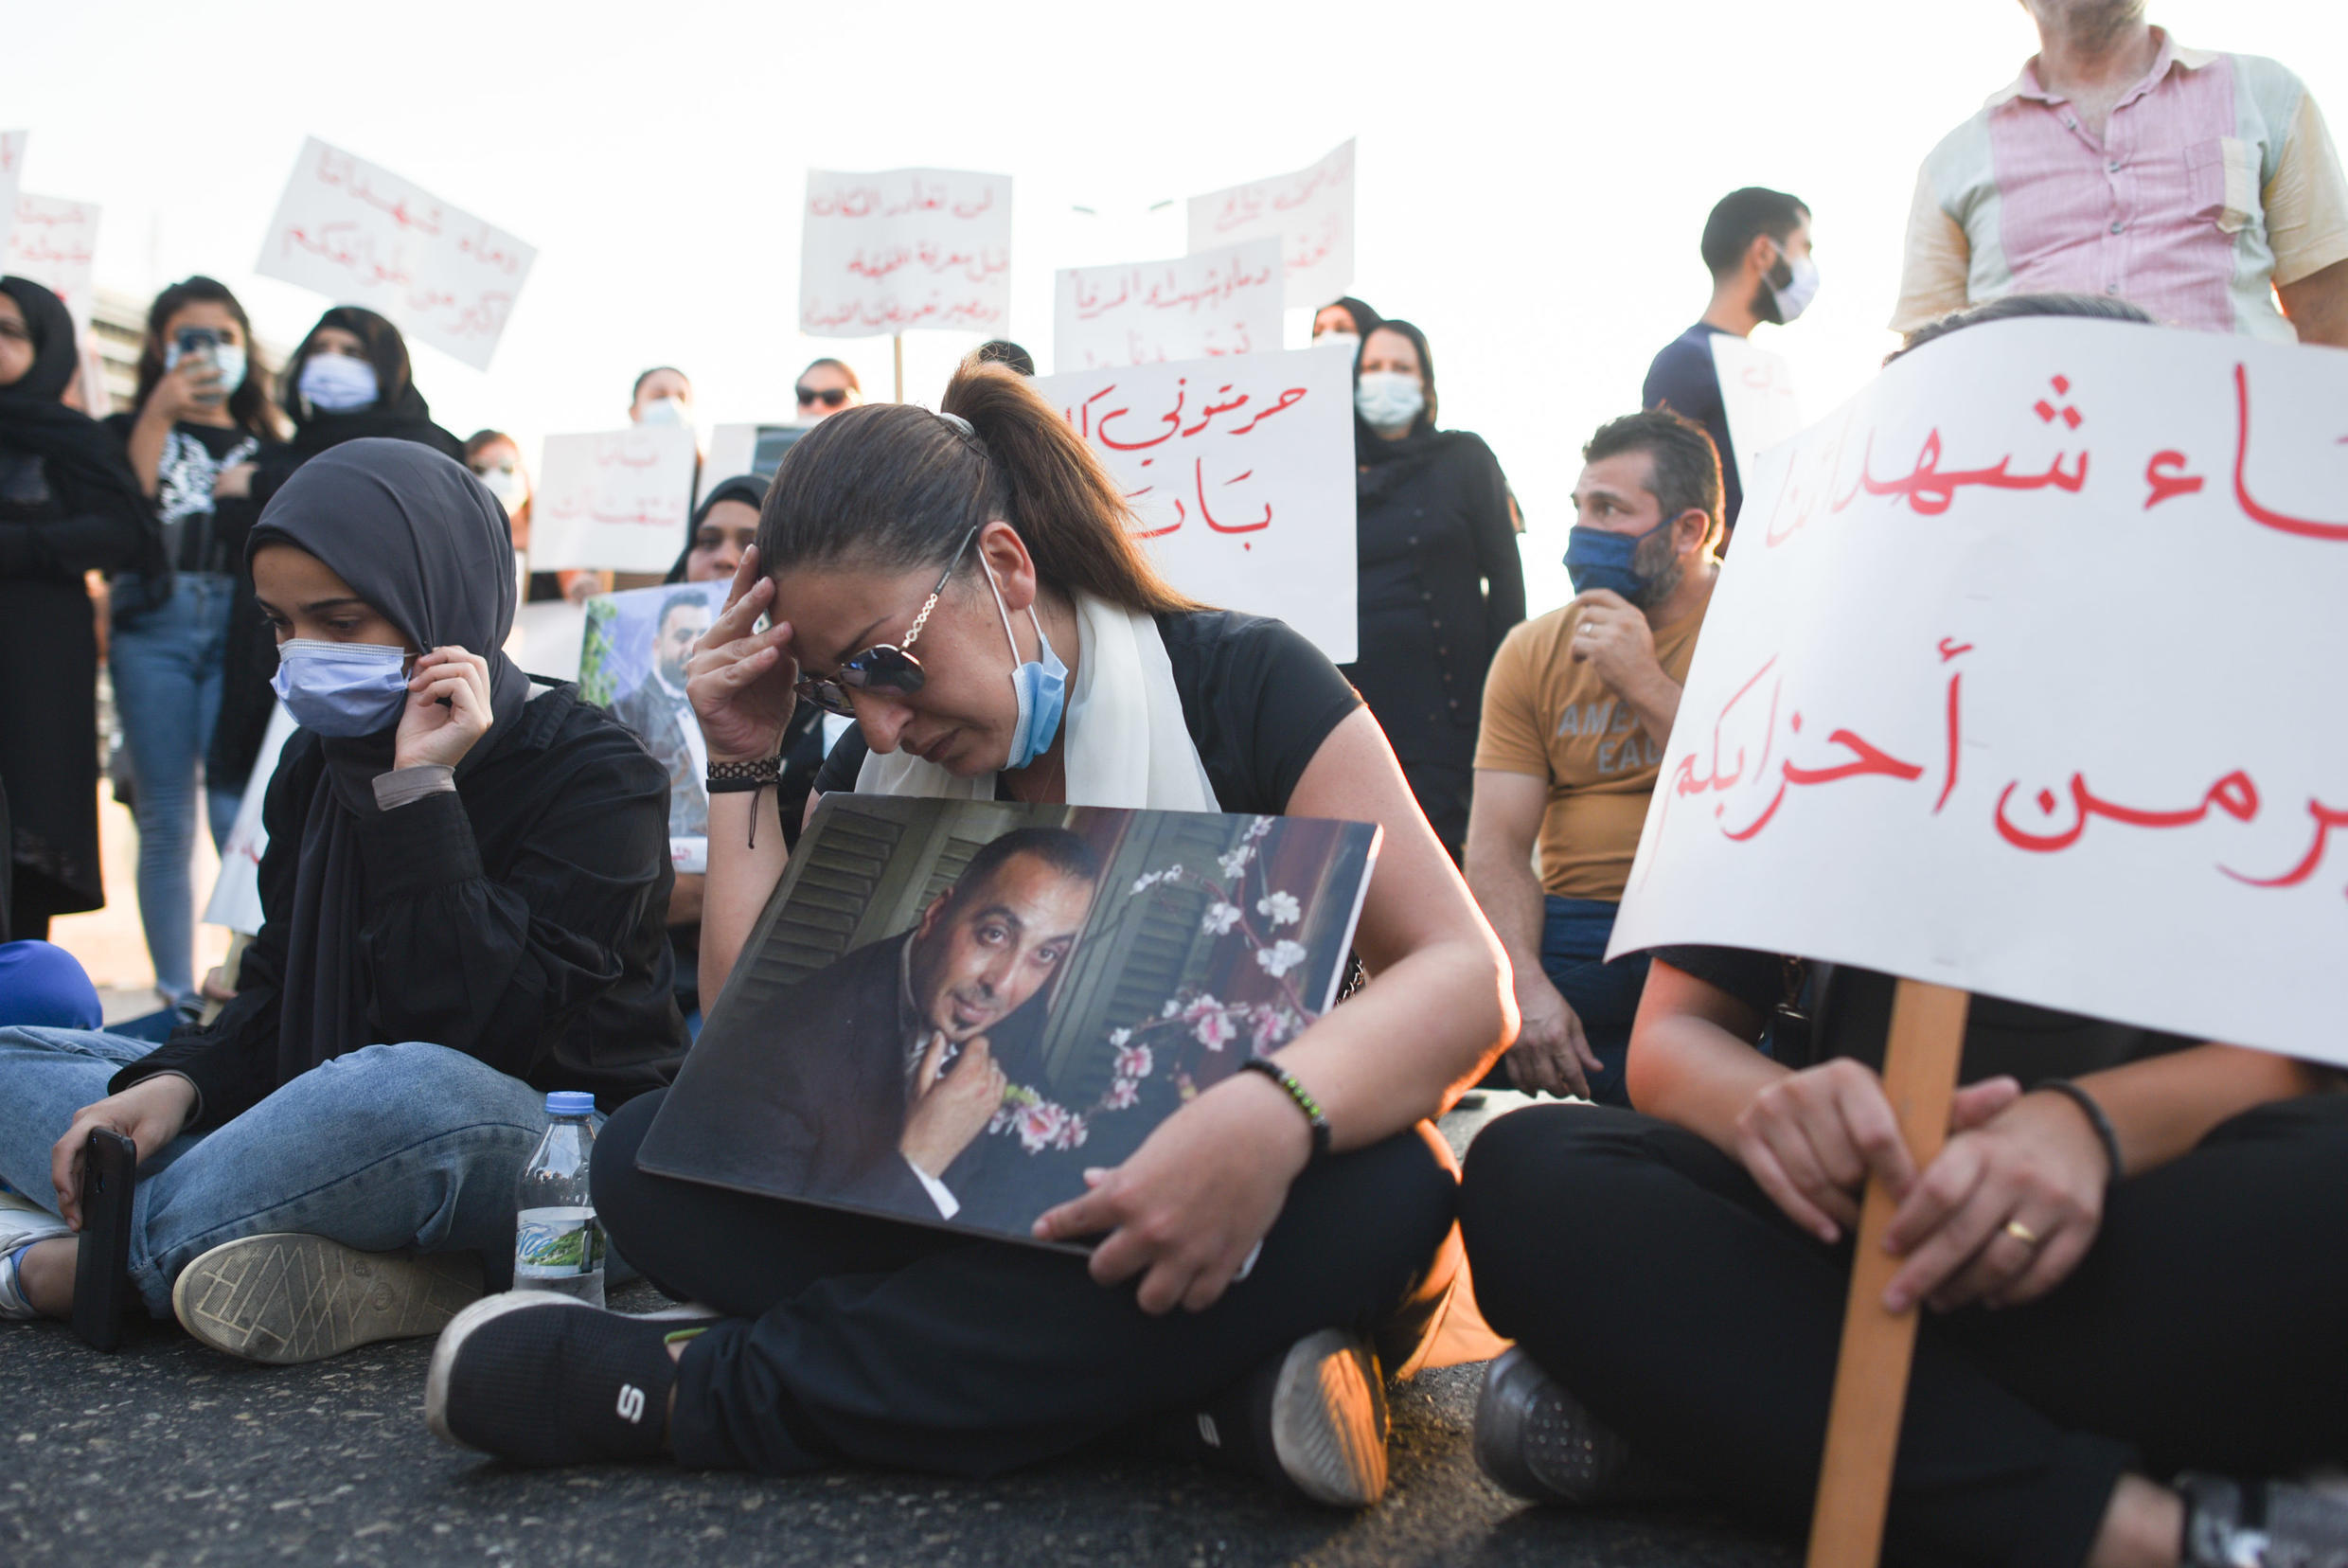 Samia Eido Dohan takes part in a road block with a photo of her husband, Mohamed Nour Doughan, who was killed in the Beirut blast.